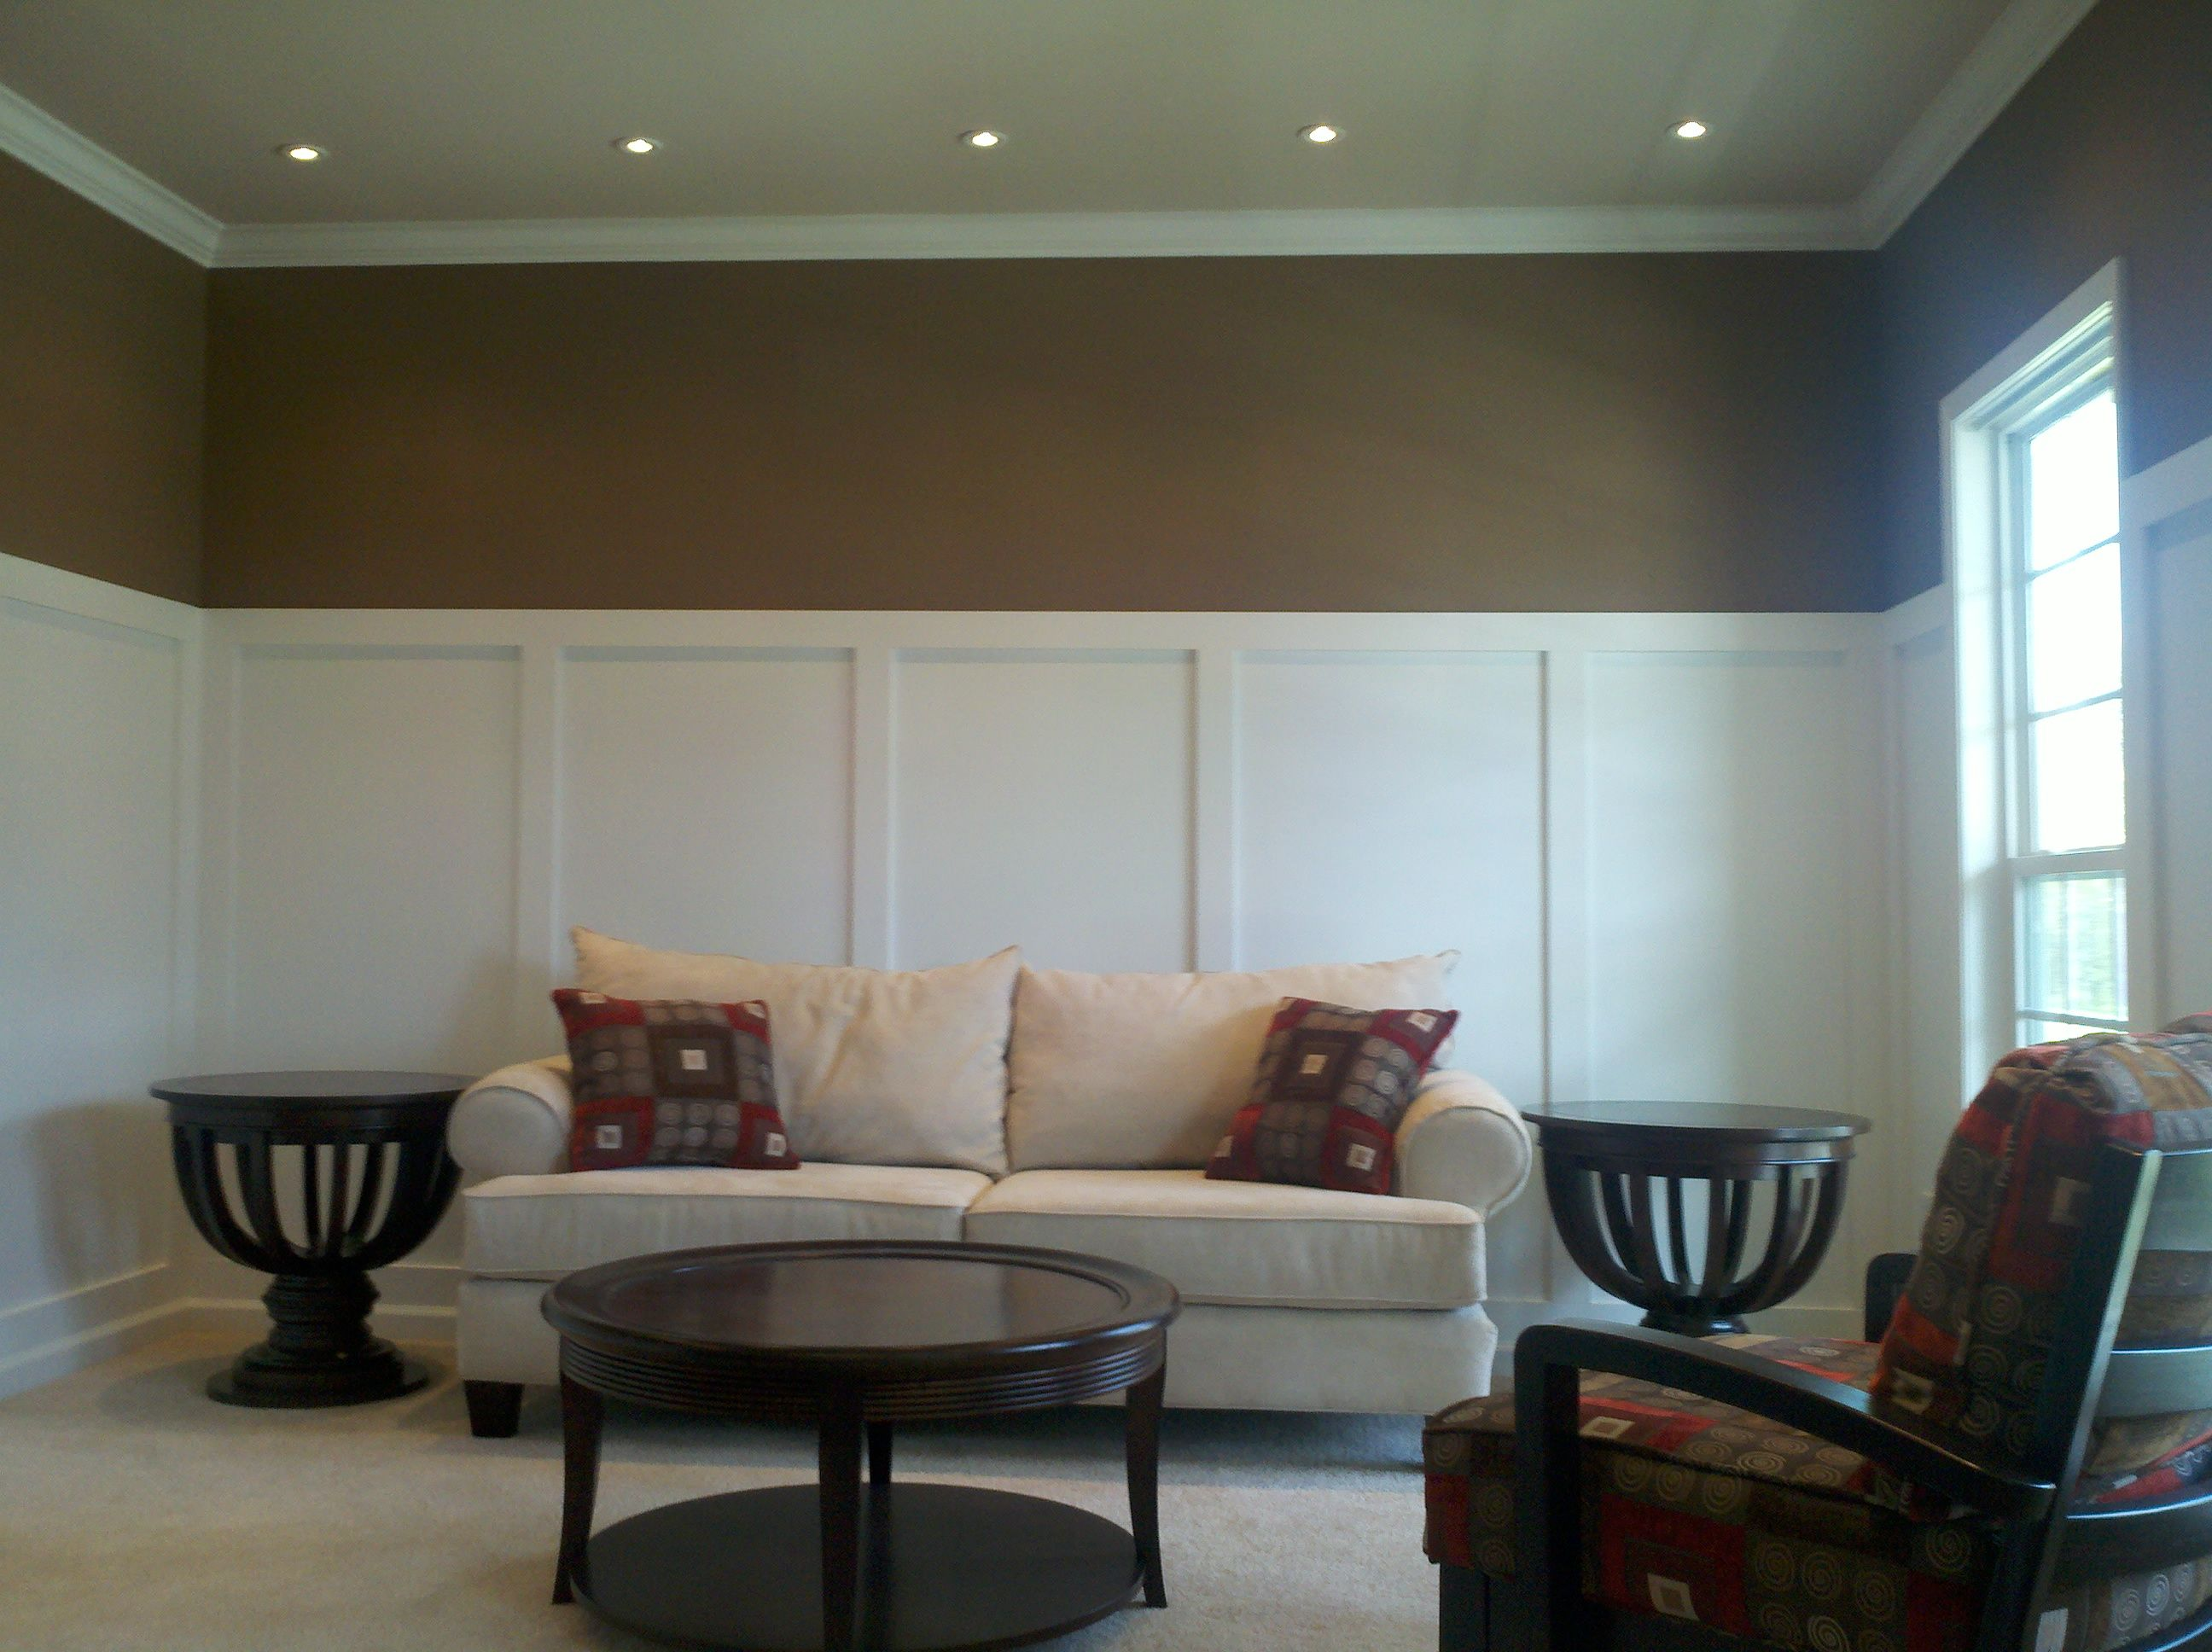 Best Recessed Lighting For Living Room Cheap Furniture Sets Halogen Lights And Board Batten Paneling Add Character To